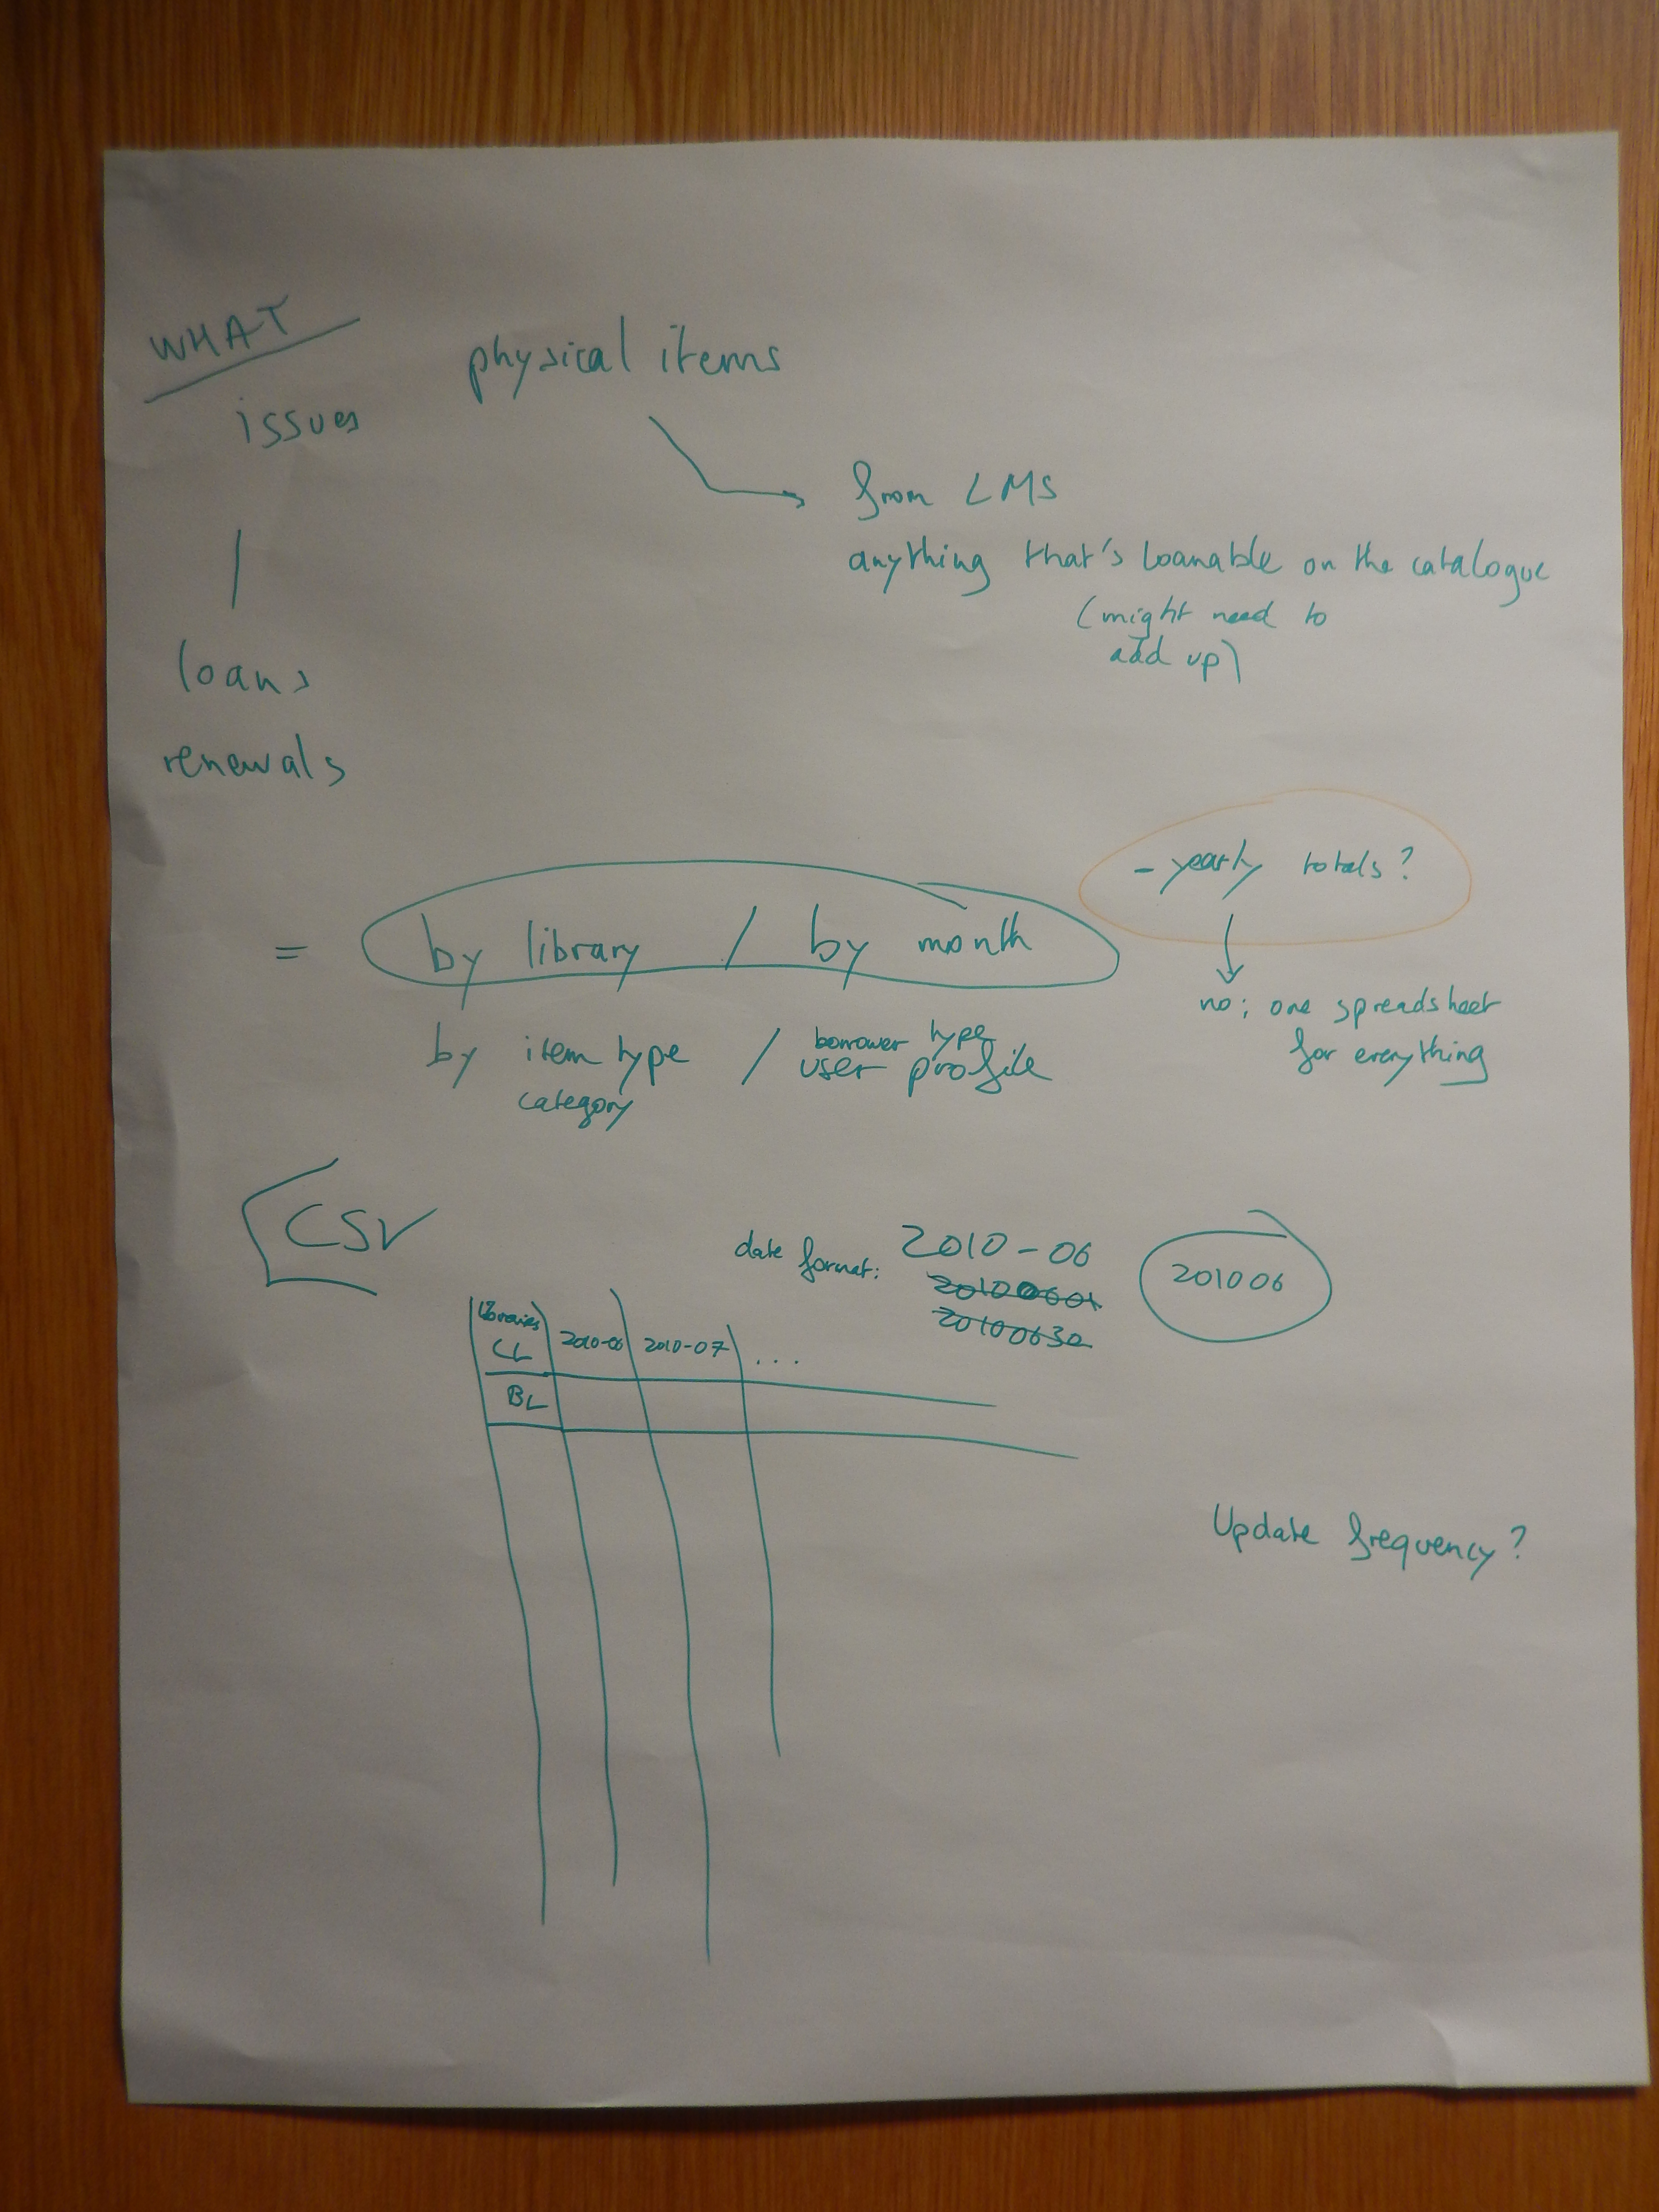 Photo of flipchart notes page1